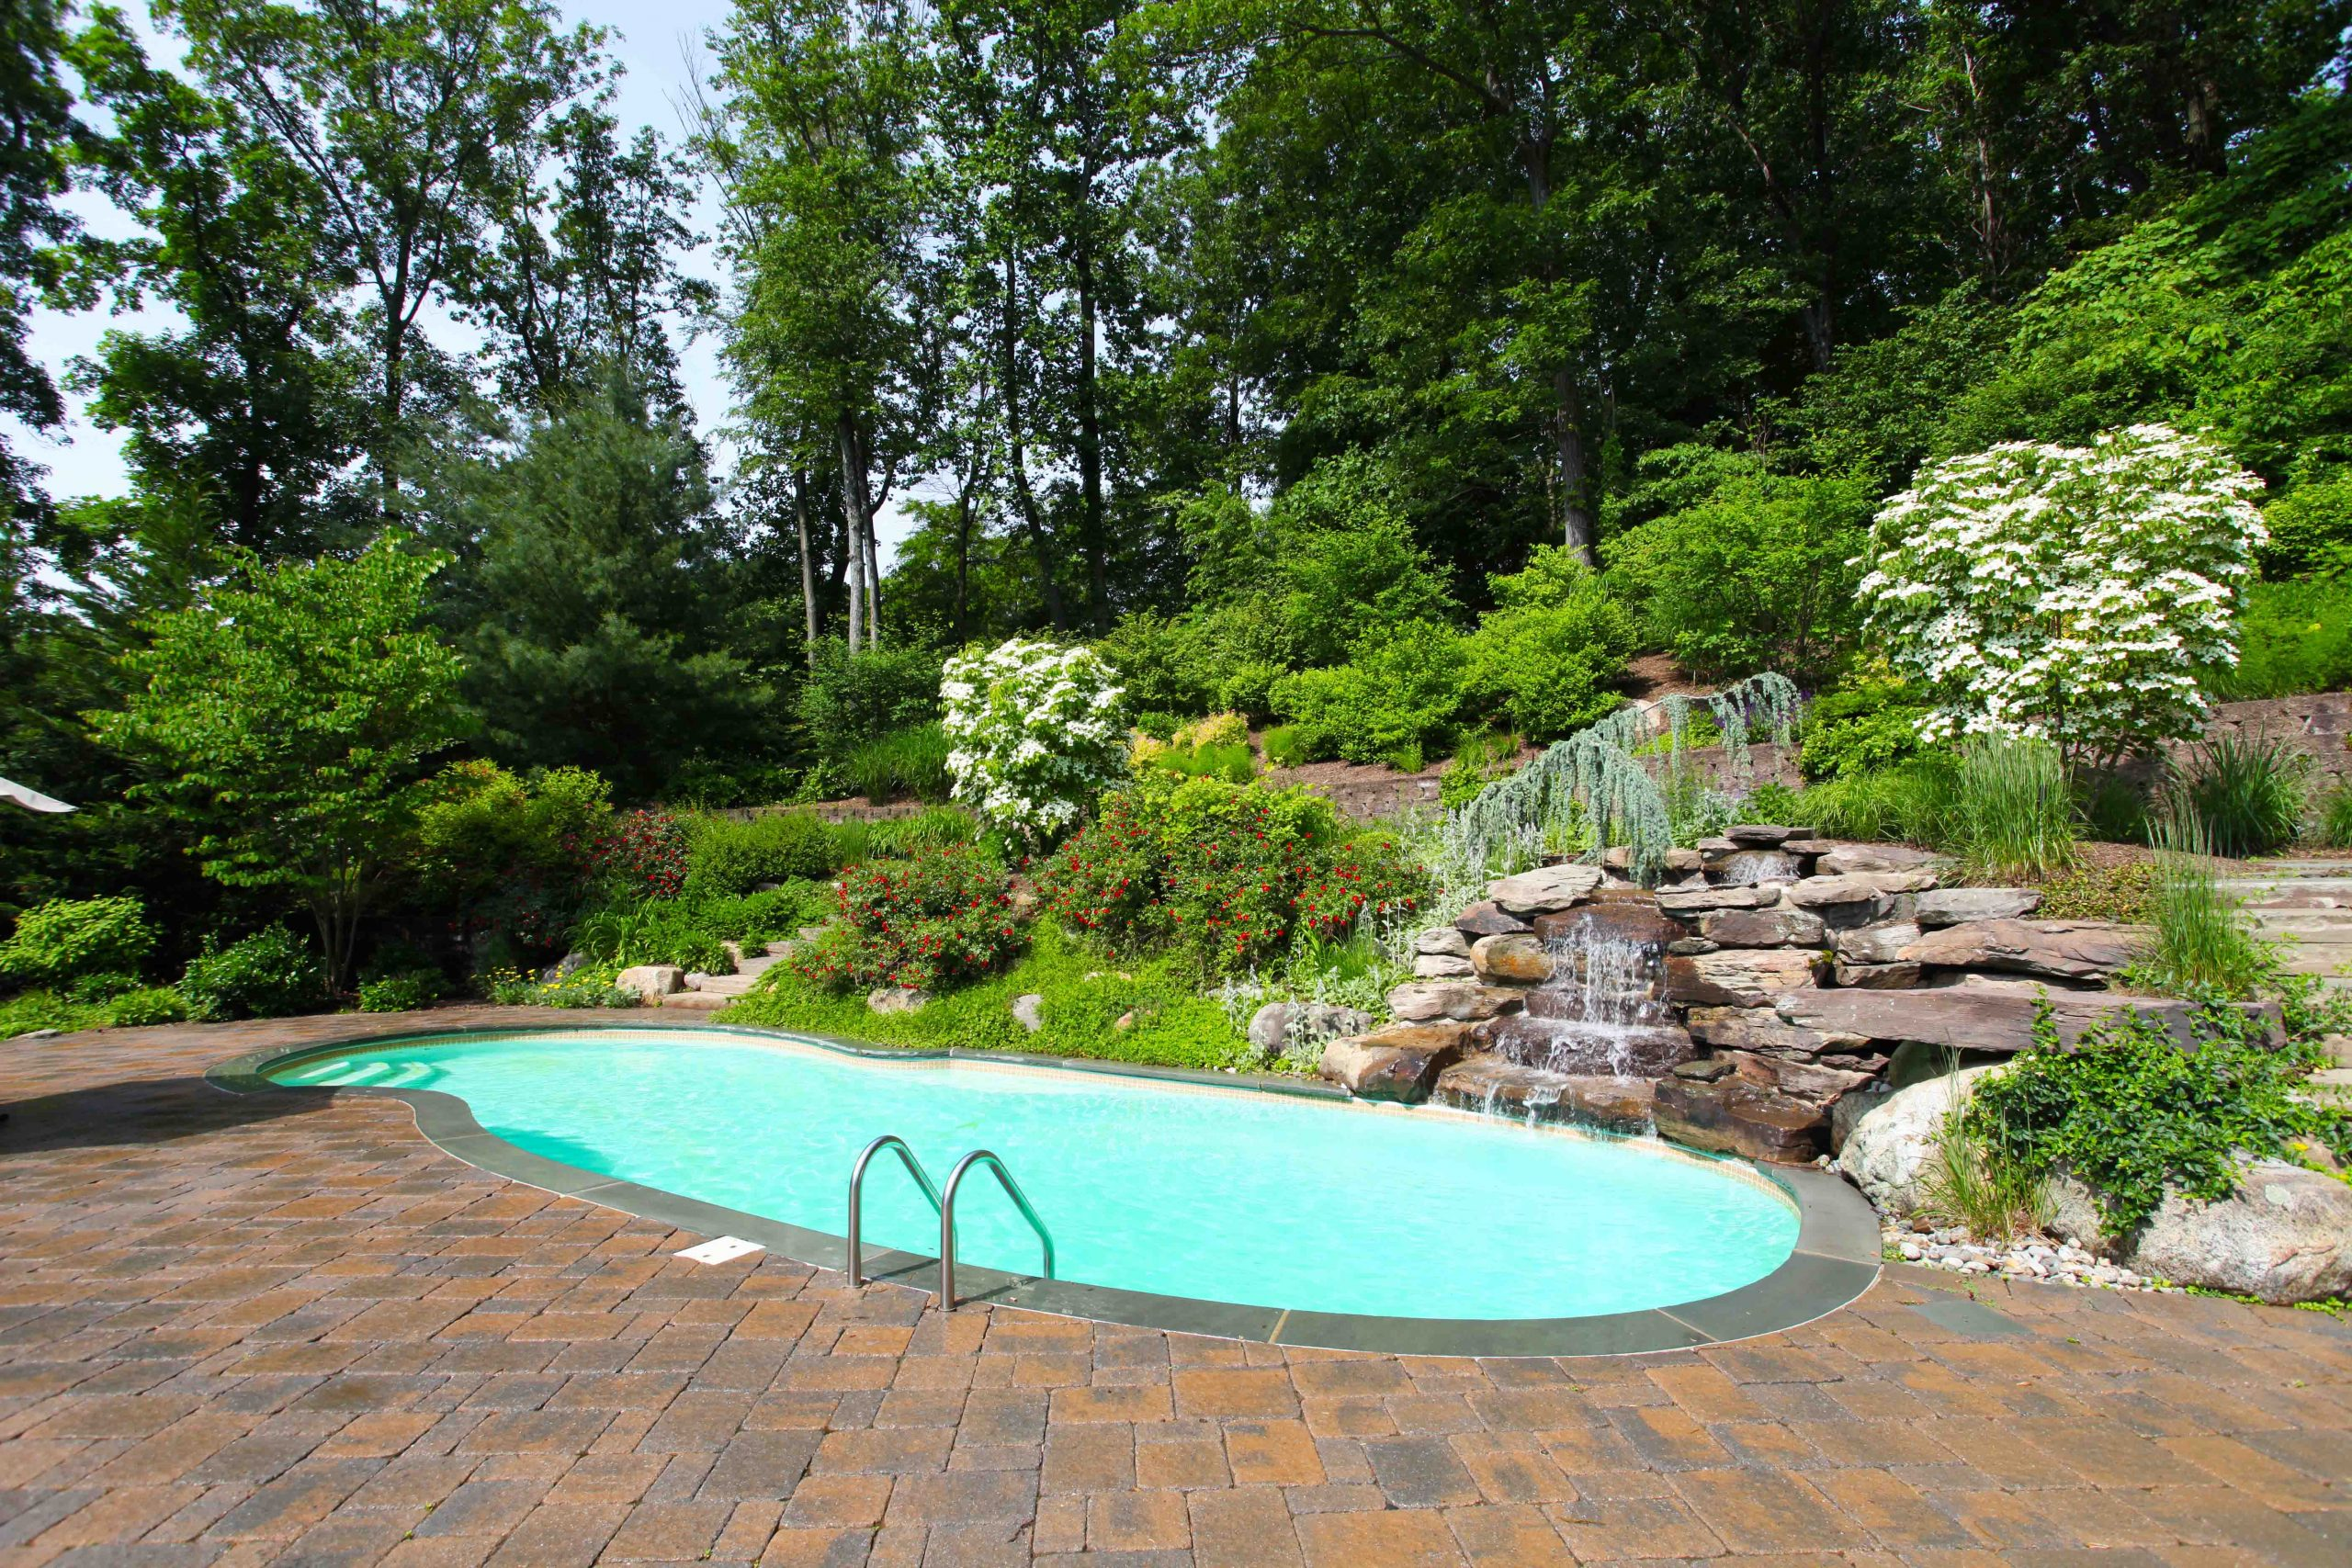 The Oasis is a free form fiberglass swimming pool designed to provide room for loads of summer fun.